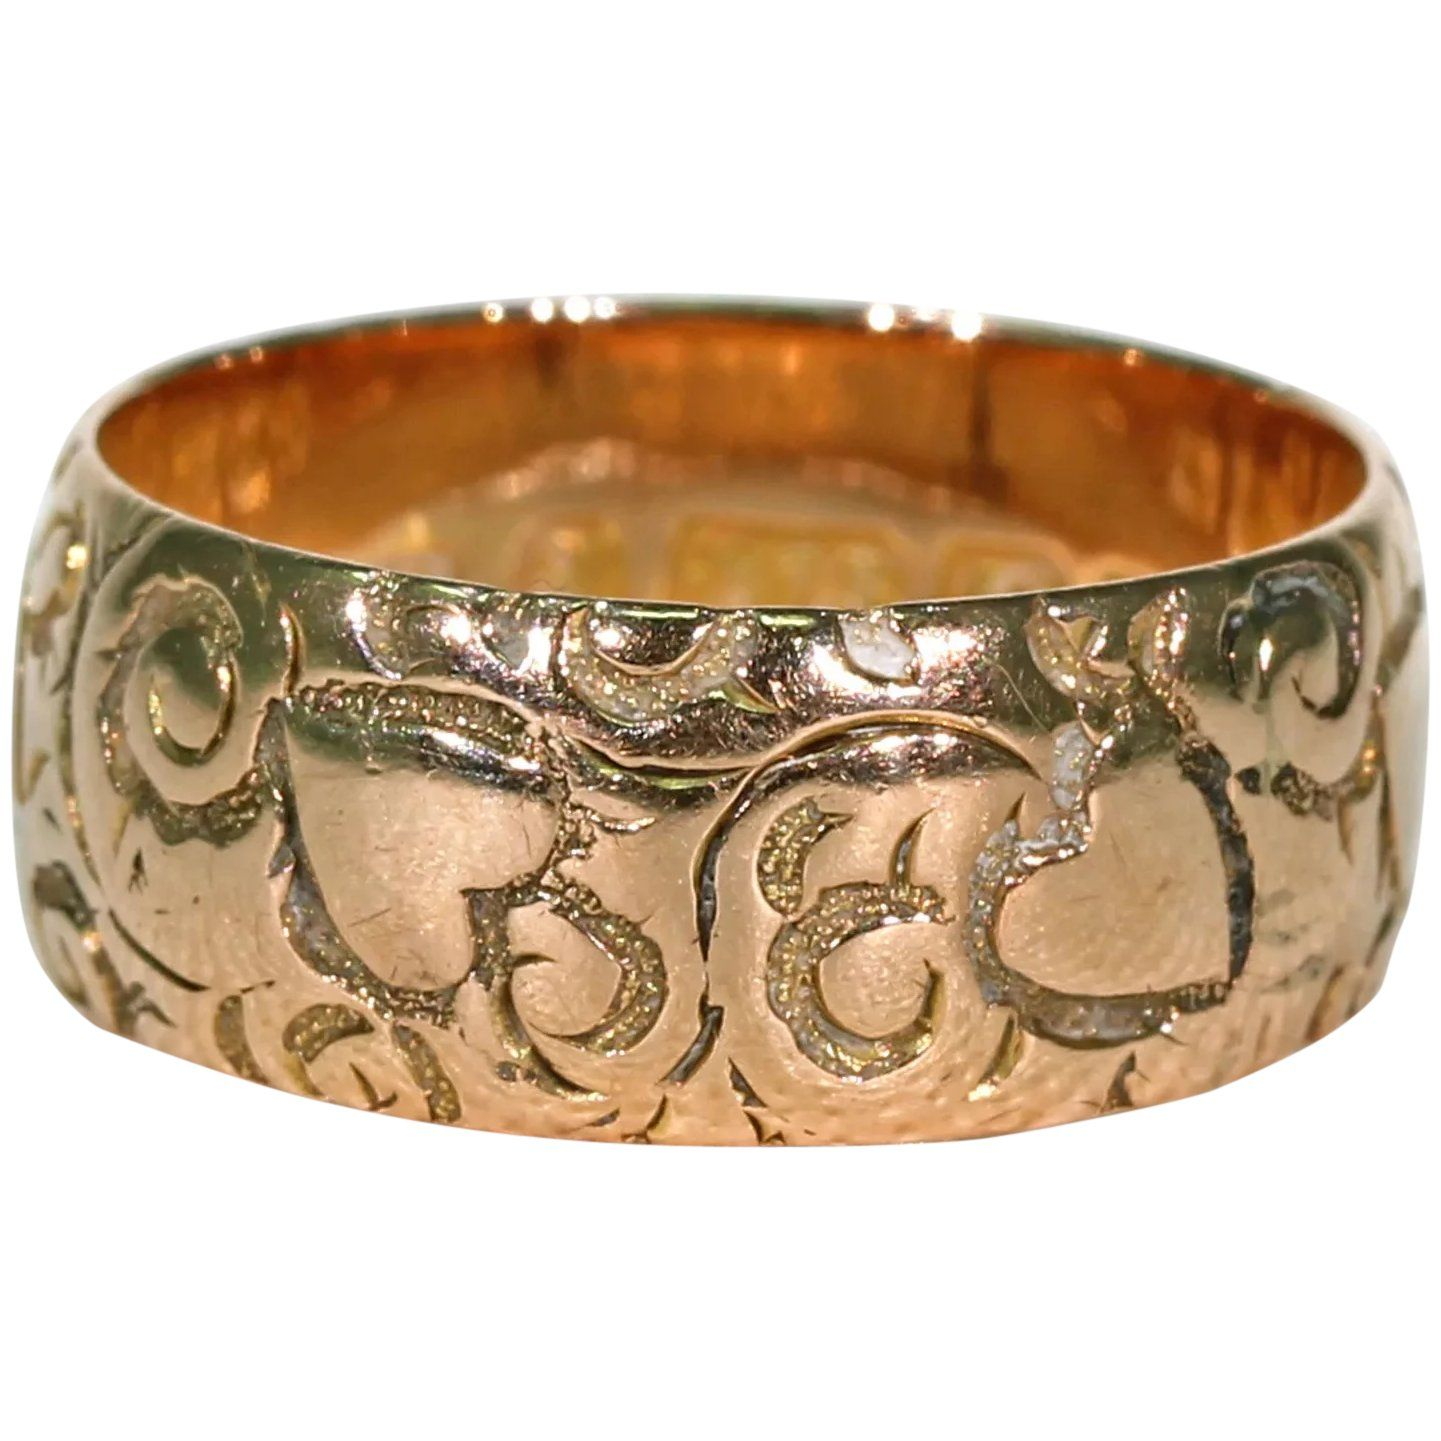 Hearts and Swirls Victorian Wedding Band Ring found at